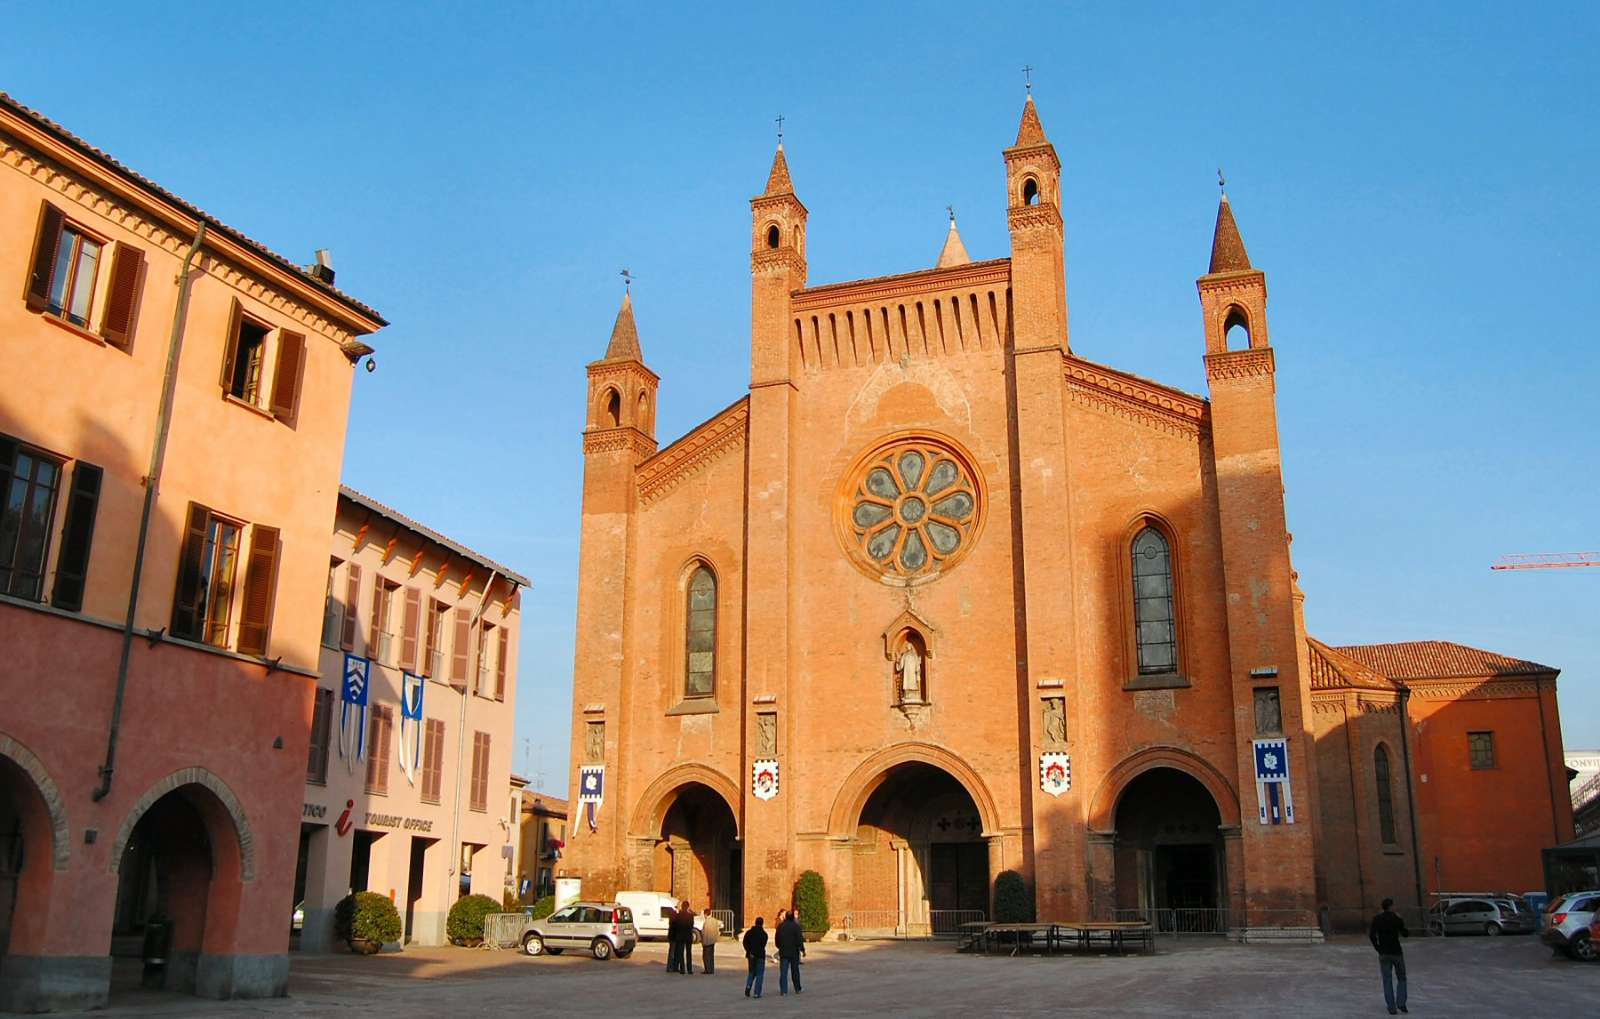 The Cathedral of Alba